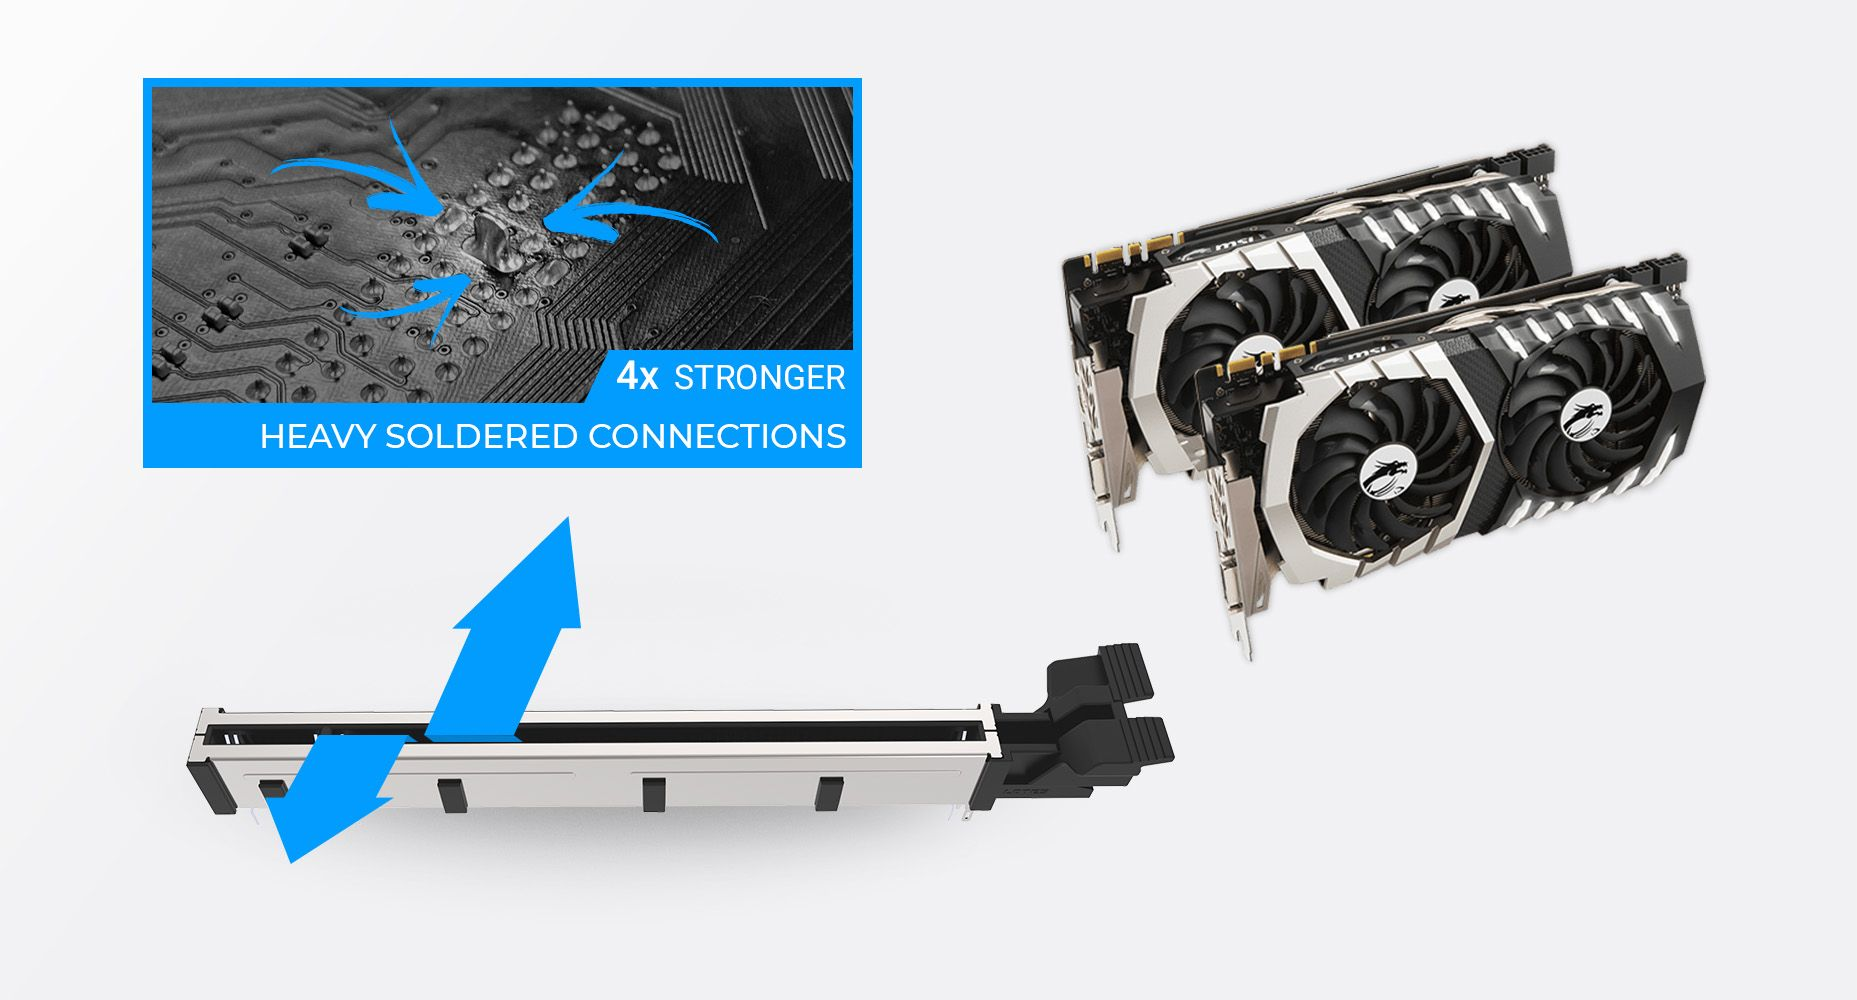 MSI Z590 PRO WIFI MULTIPLE GPU SUPPORTS AND STEEL ARMOR